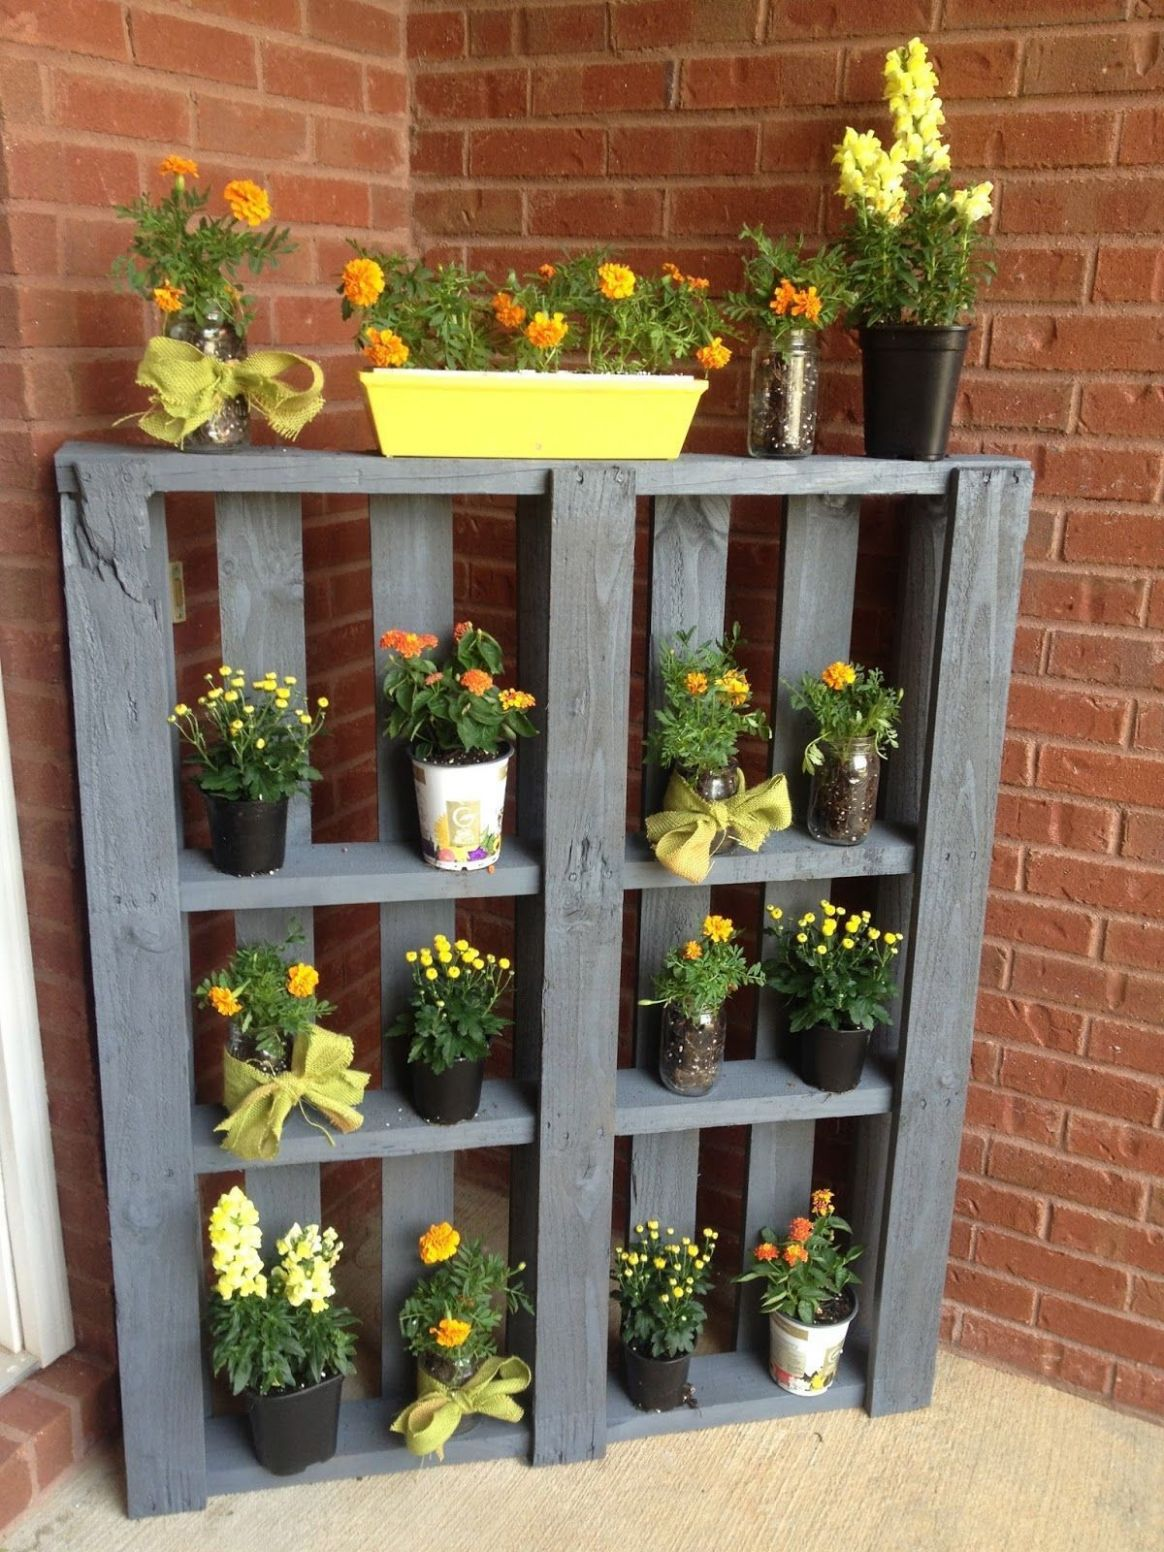 8 Garden Ideas With Pallets, Most Brilliant as well as Stunning ..